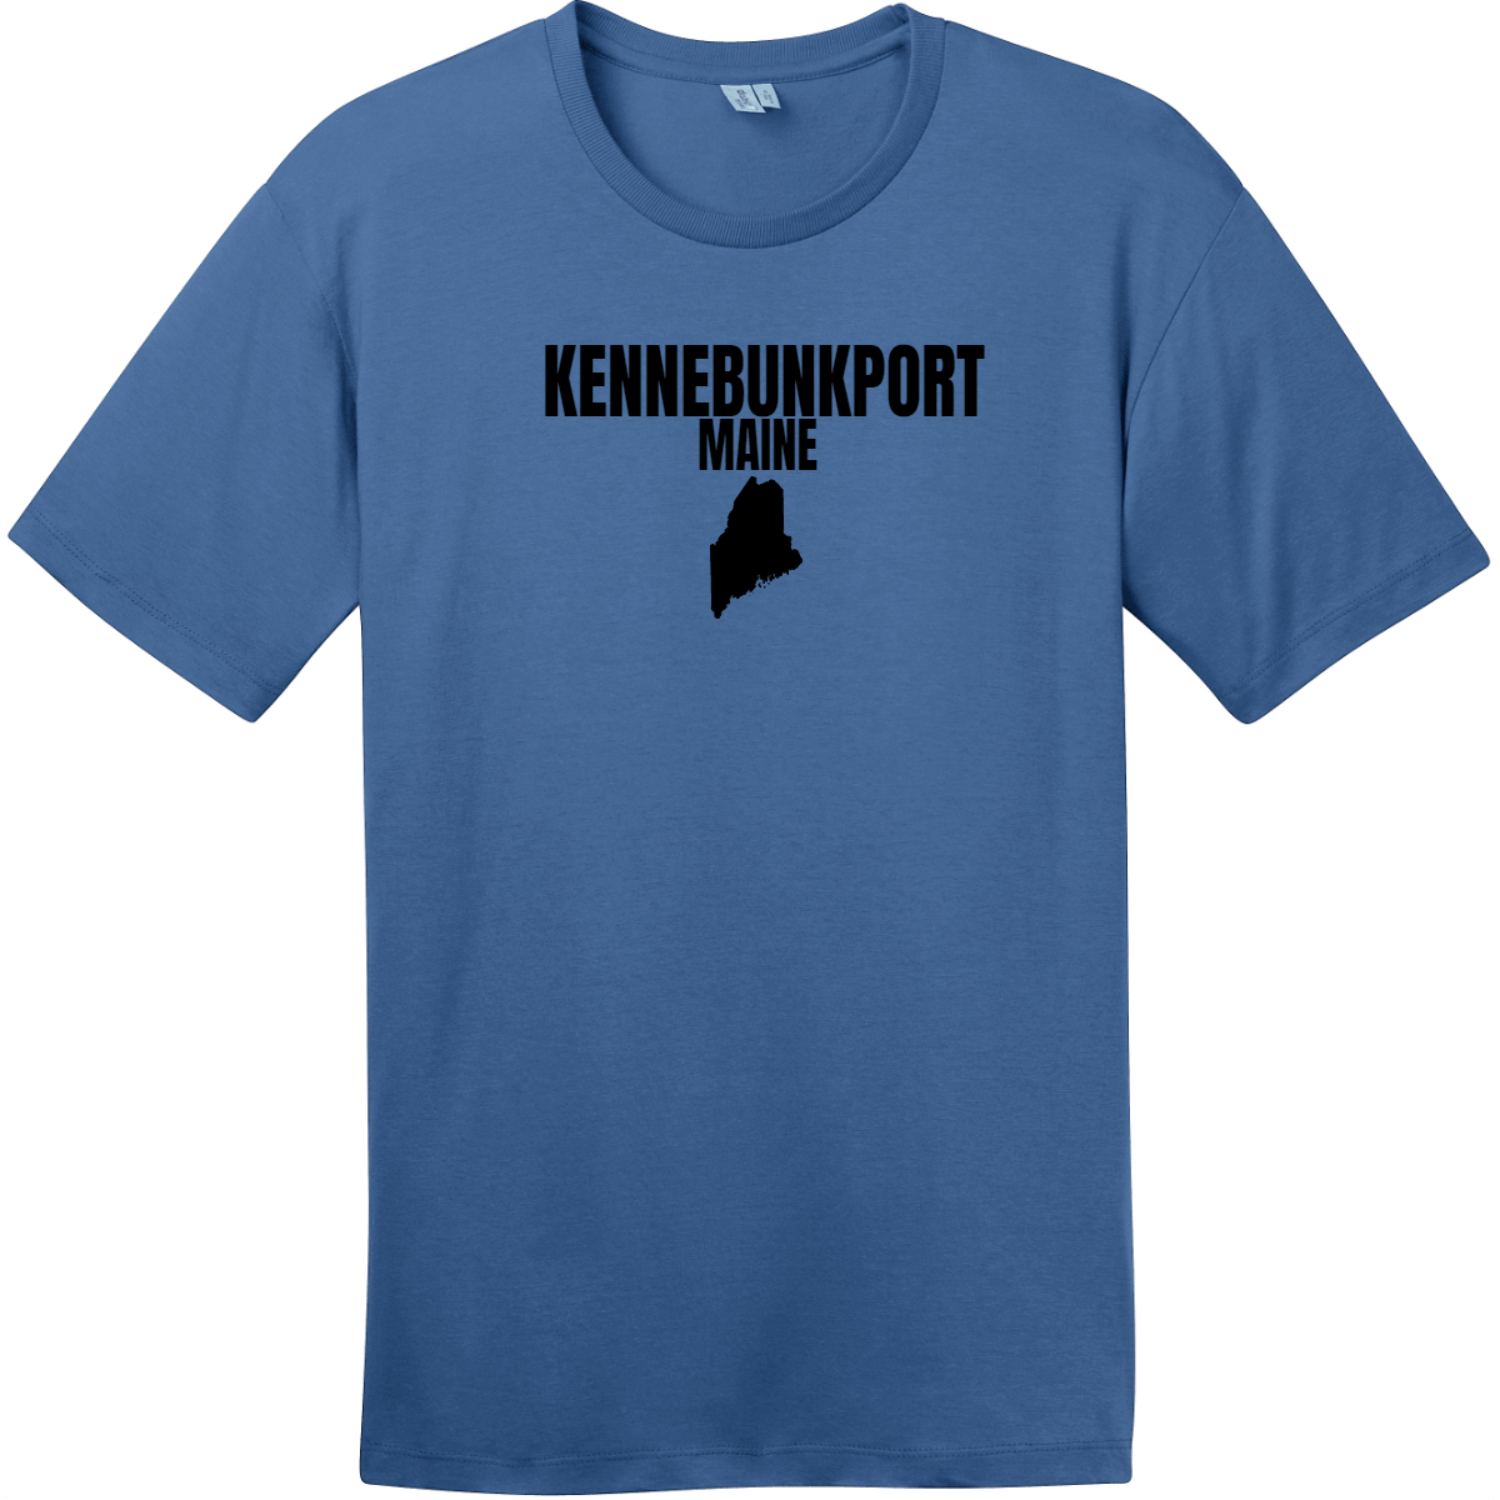 Kennebunkport Maine State T-Shirt Maritime Blue District Perfect Weight Tee DT104